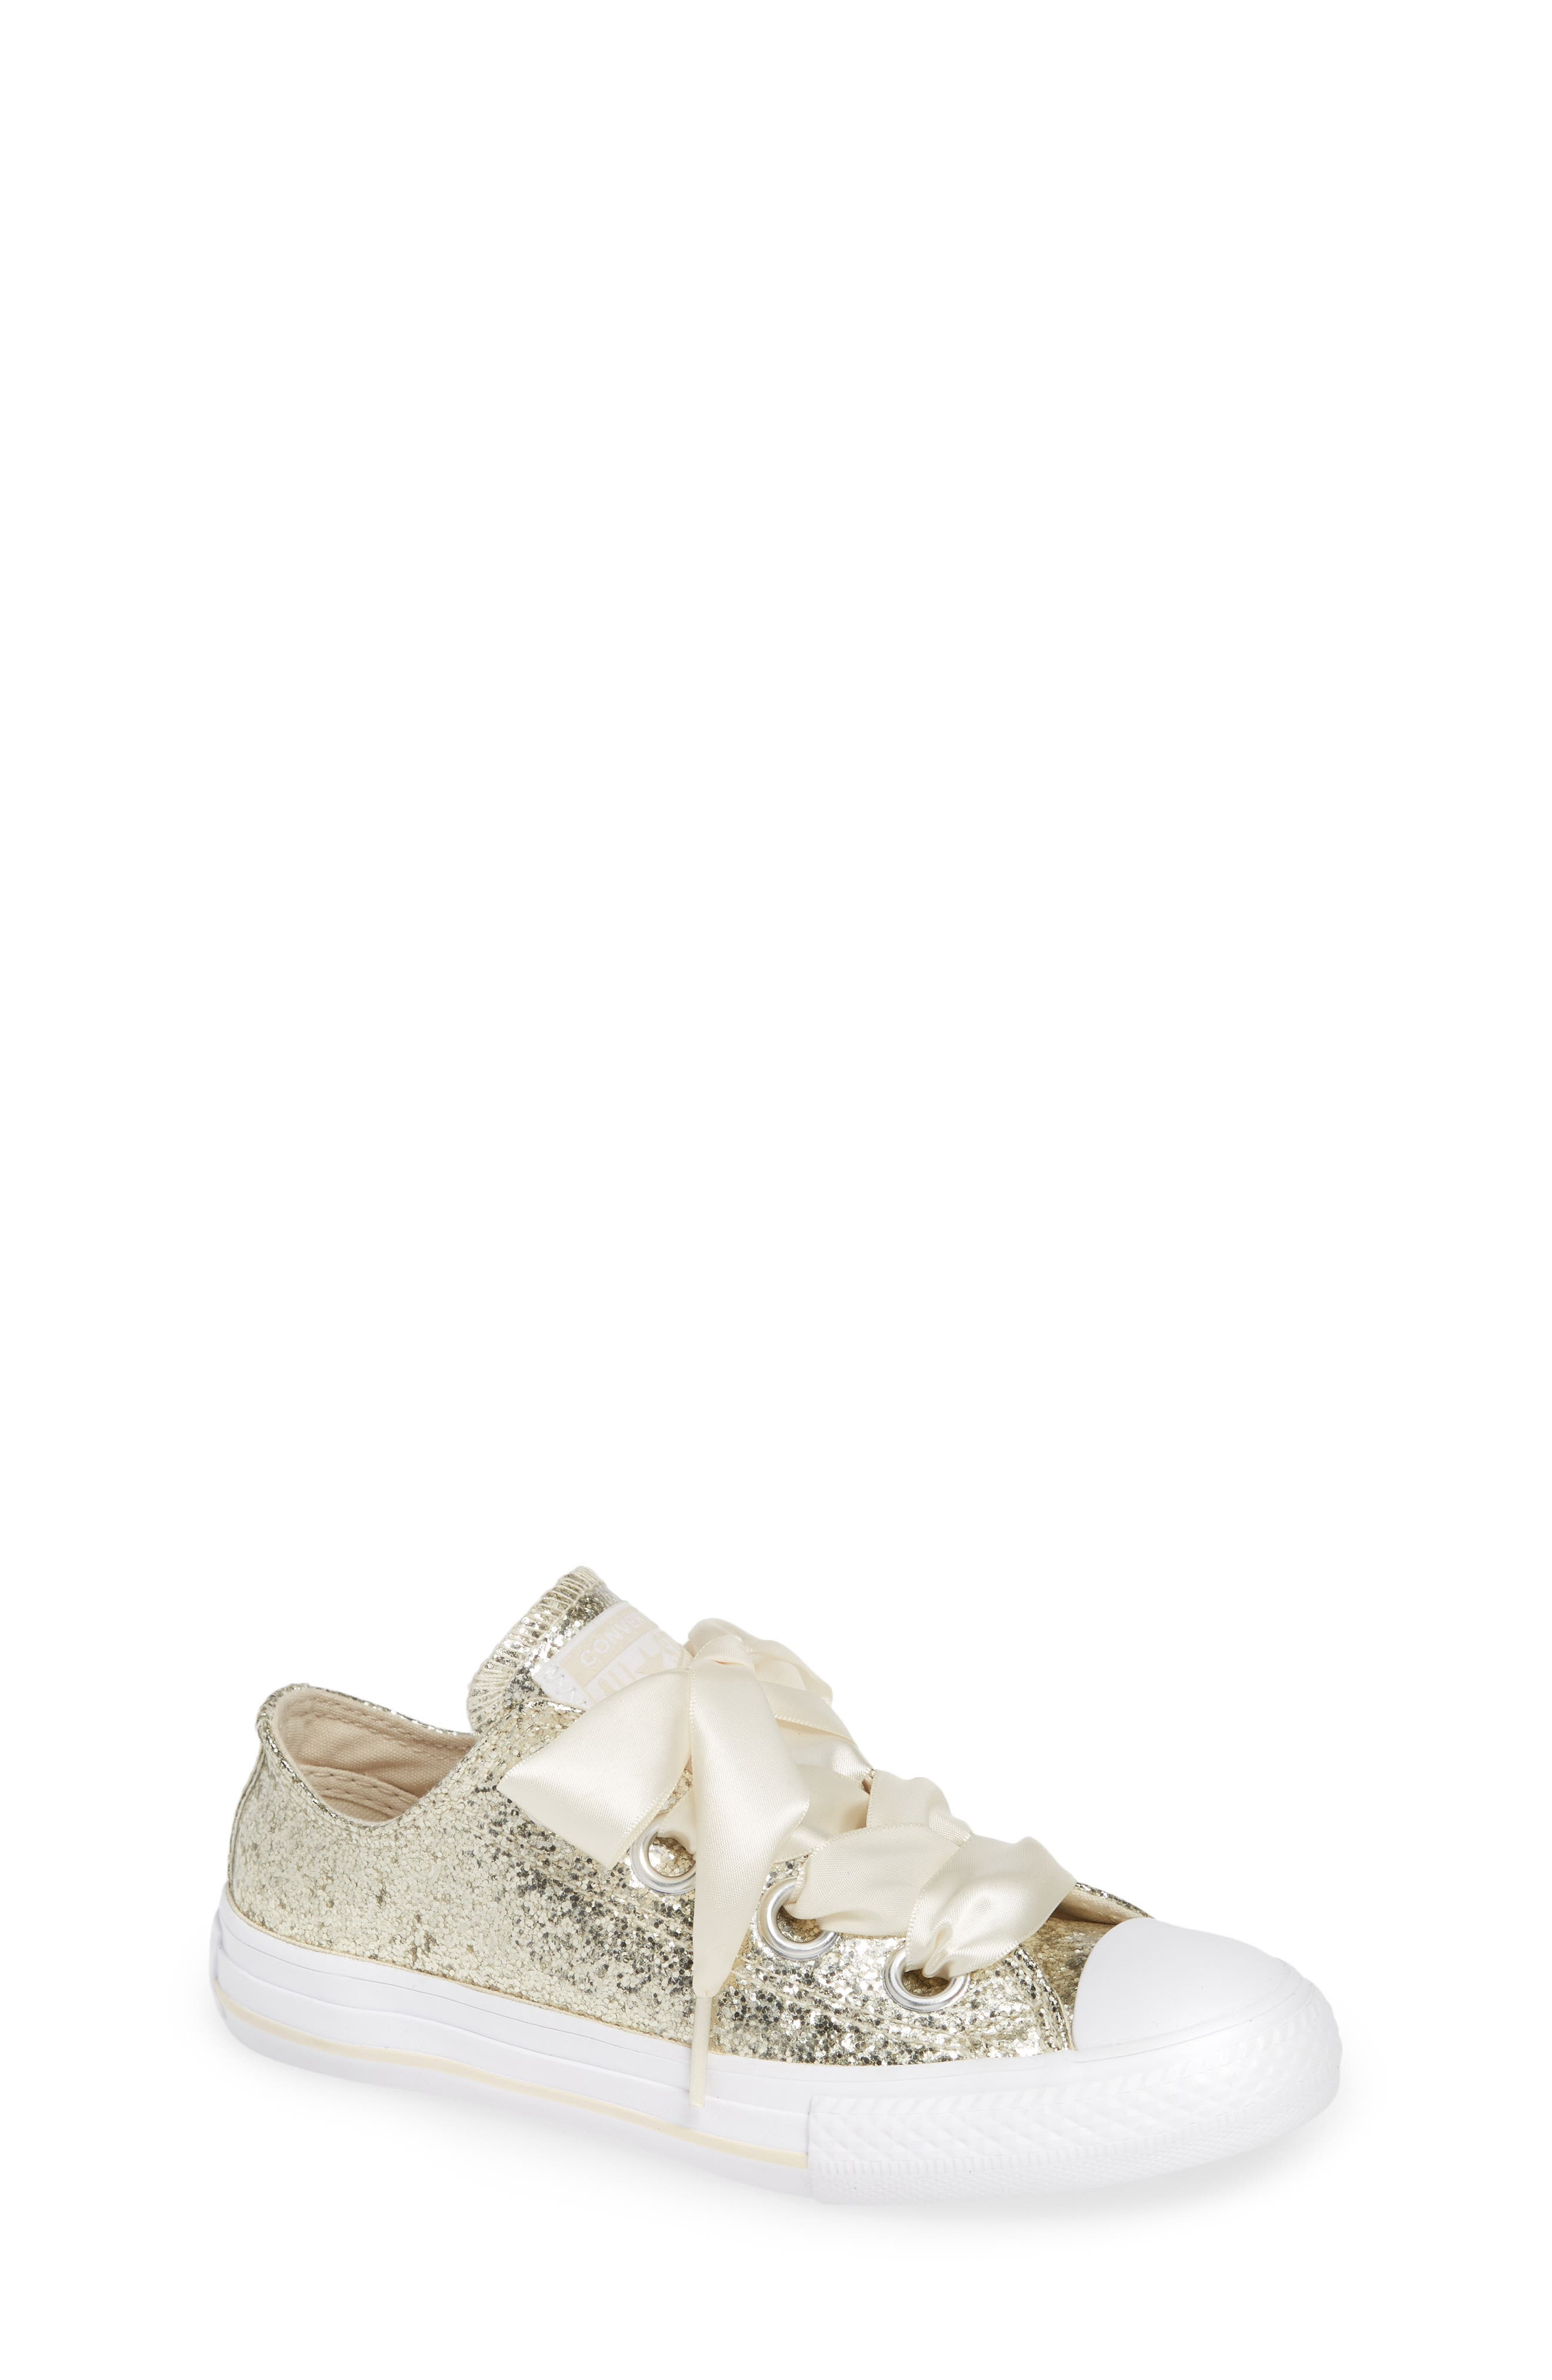 Chuck Taylor<sup>®</sup> All Star<sup>®</sup> Glitter Big Eyelet Ox Sneaker,                         Main,                         color, NATURAL IVORY